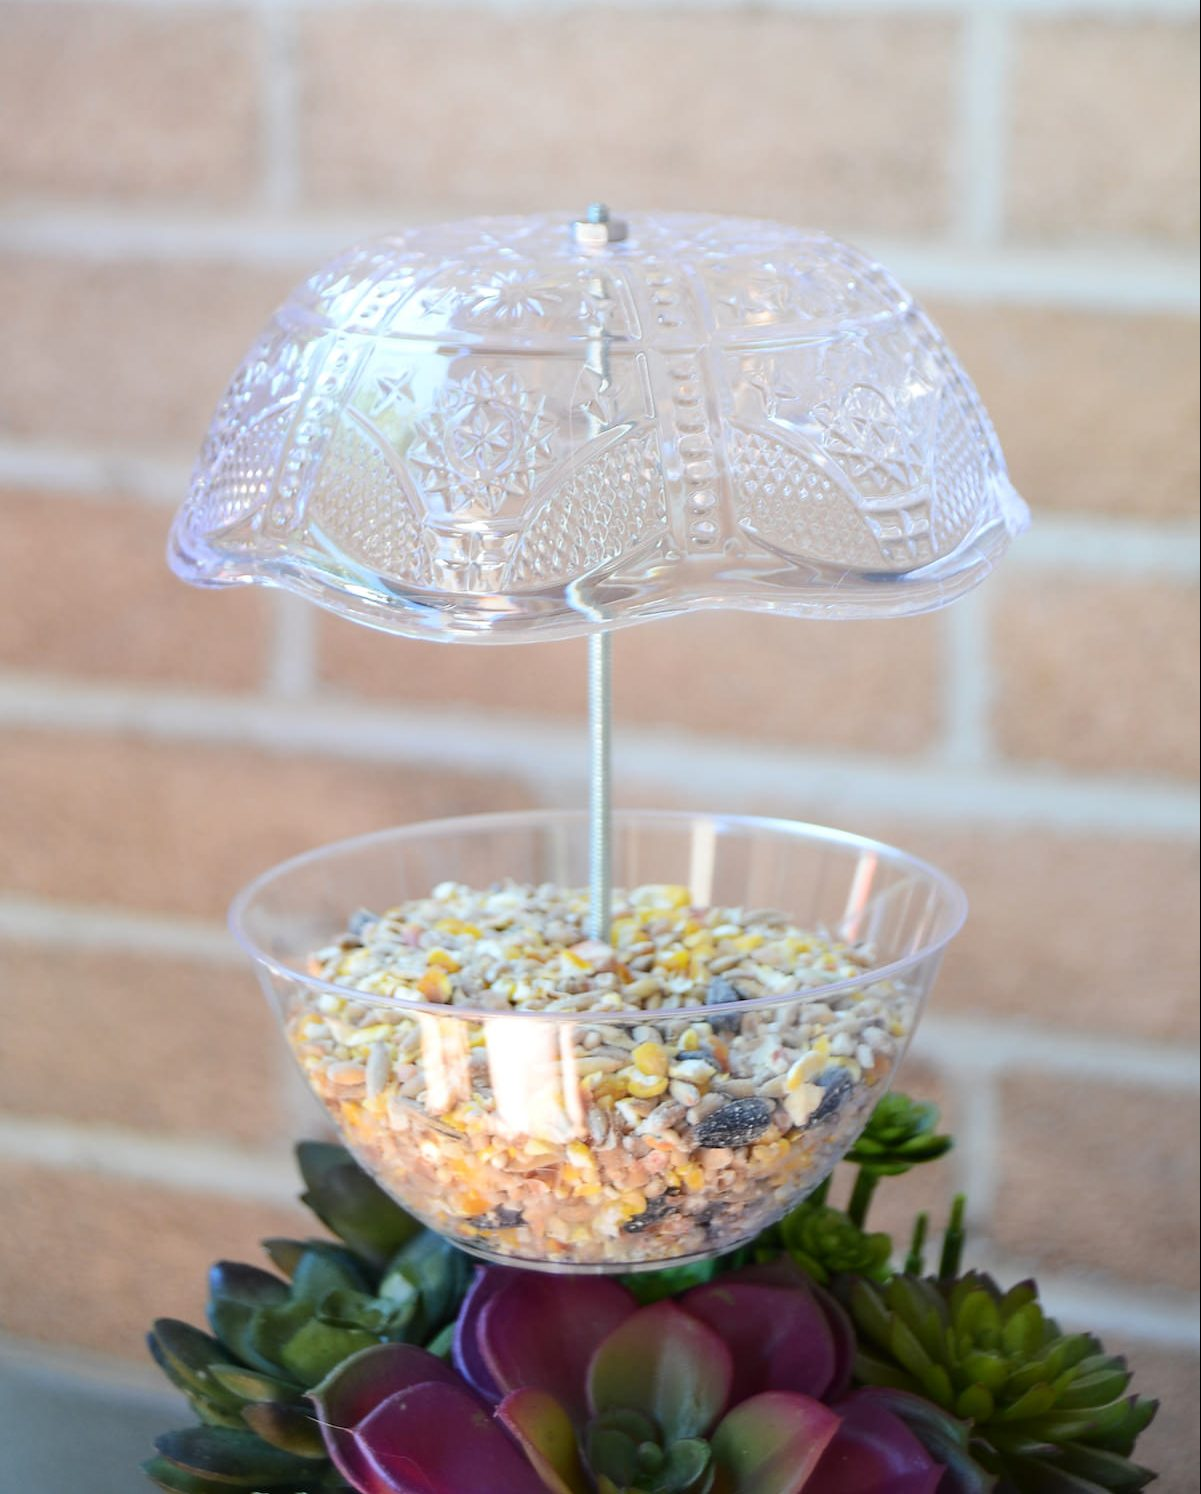 DIY bird feeder with plastic plates